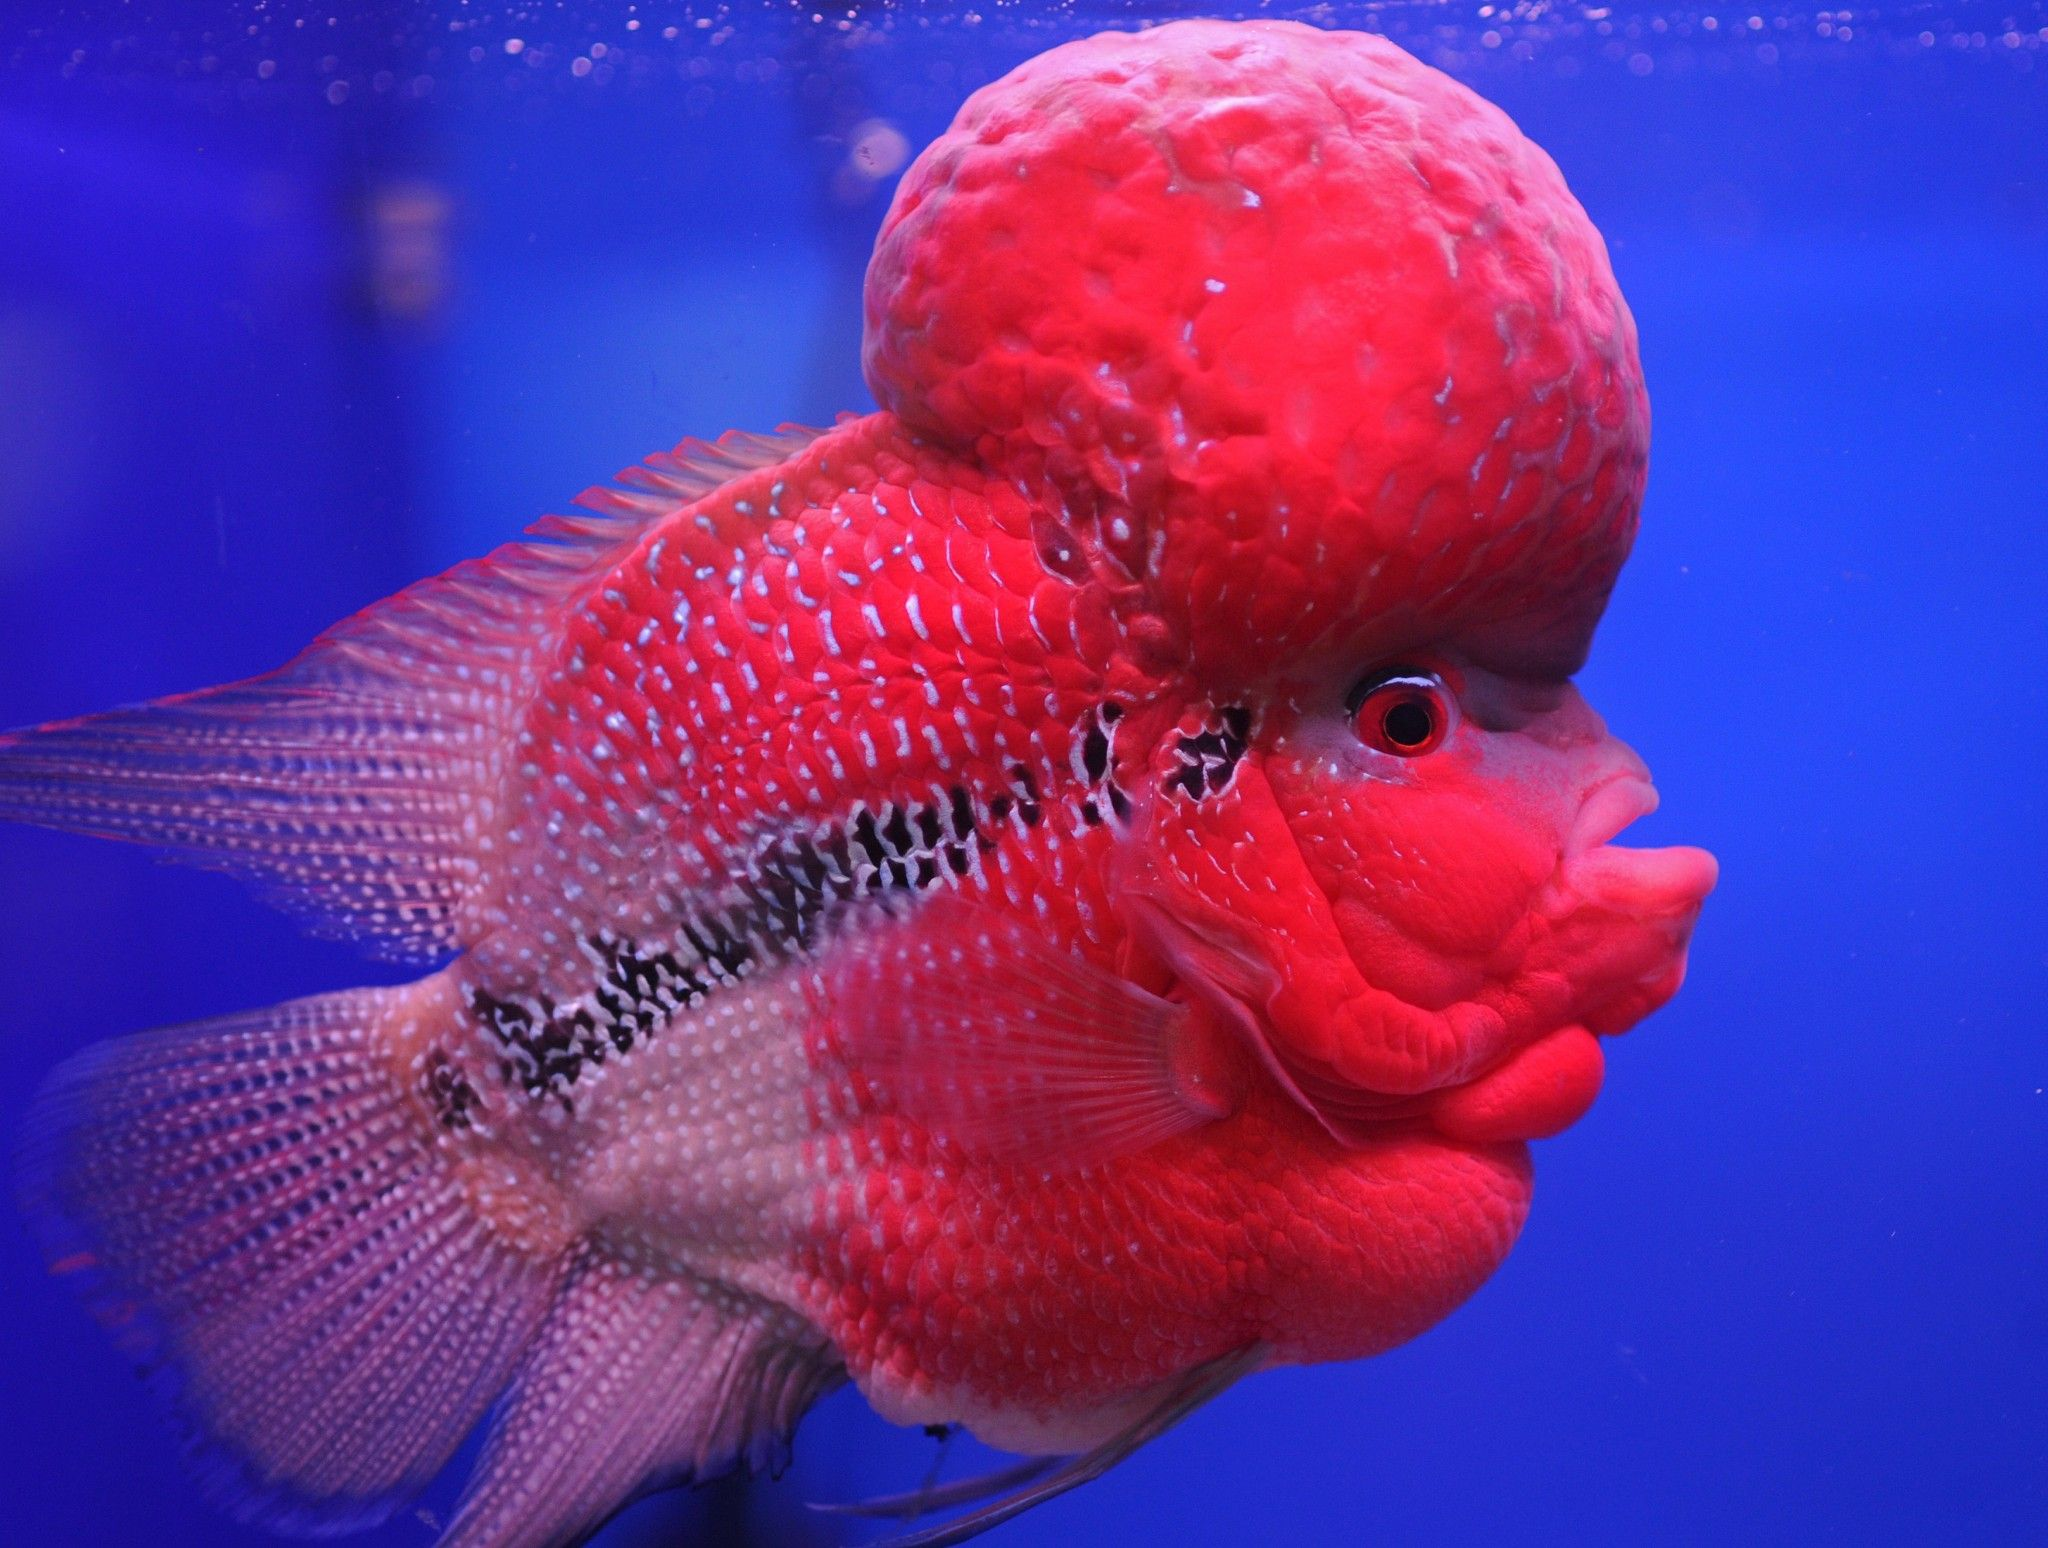 Flowerhorn fish, macaw nursery, polar bears, ducklings and more in ...